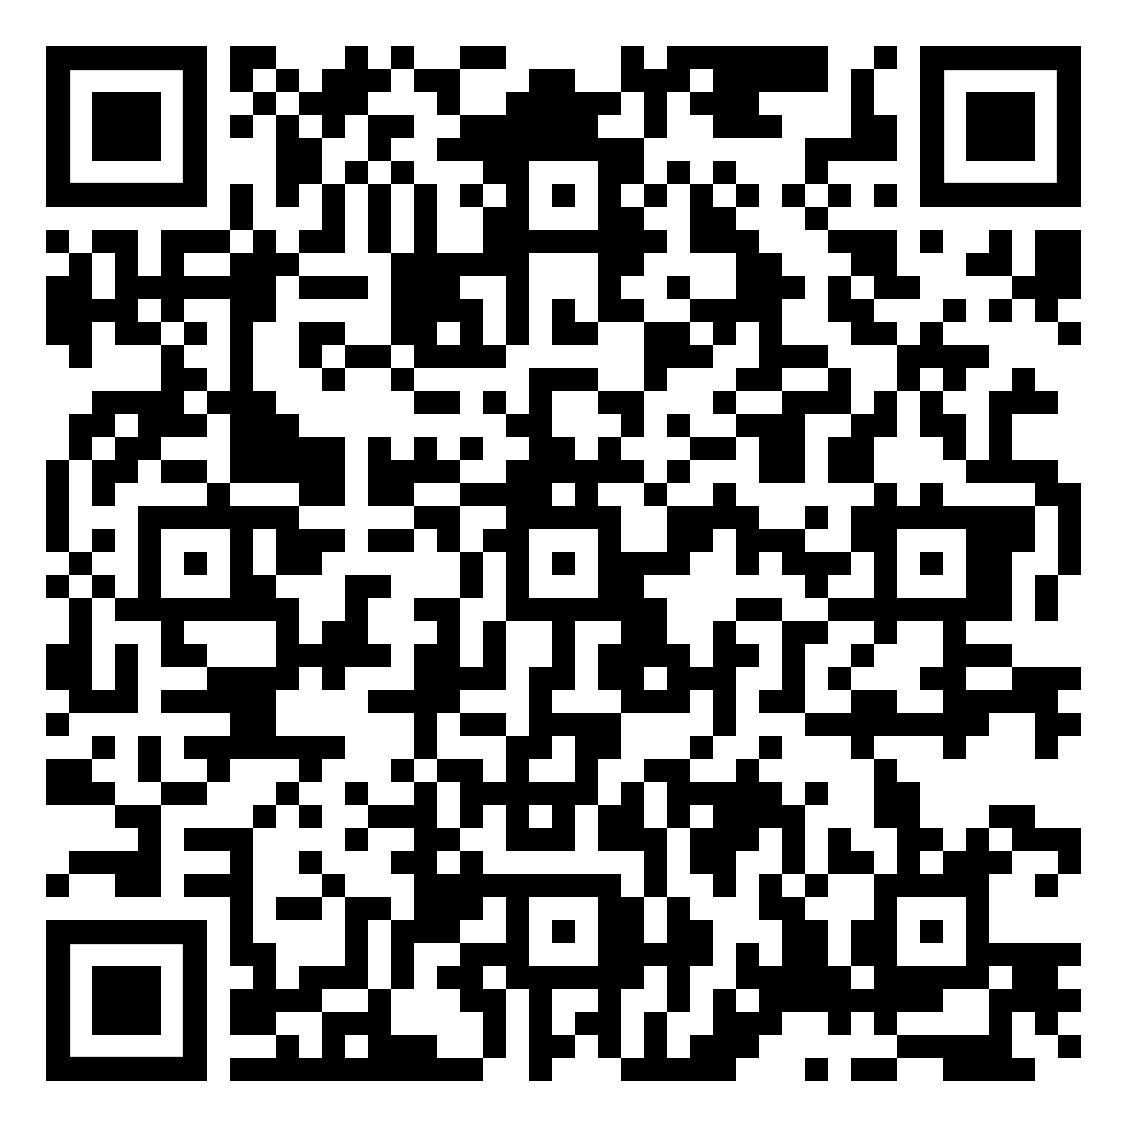 COVID-19 Screener Form QR Code